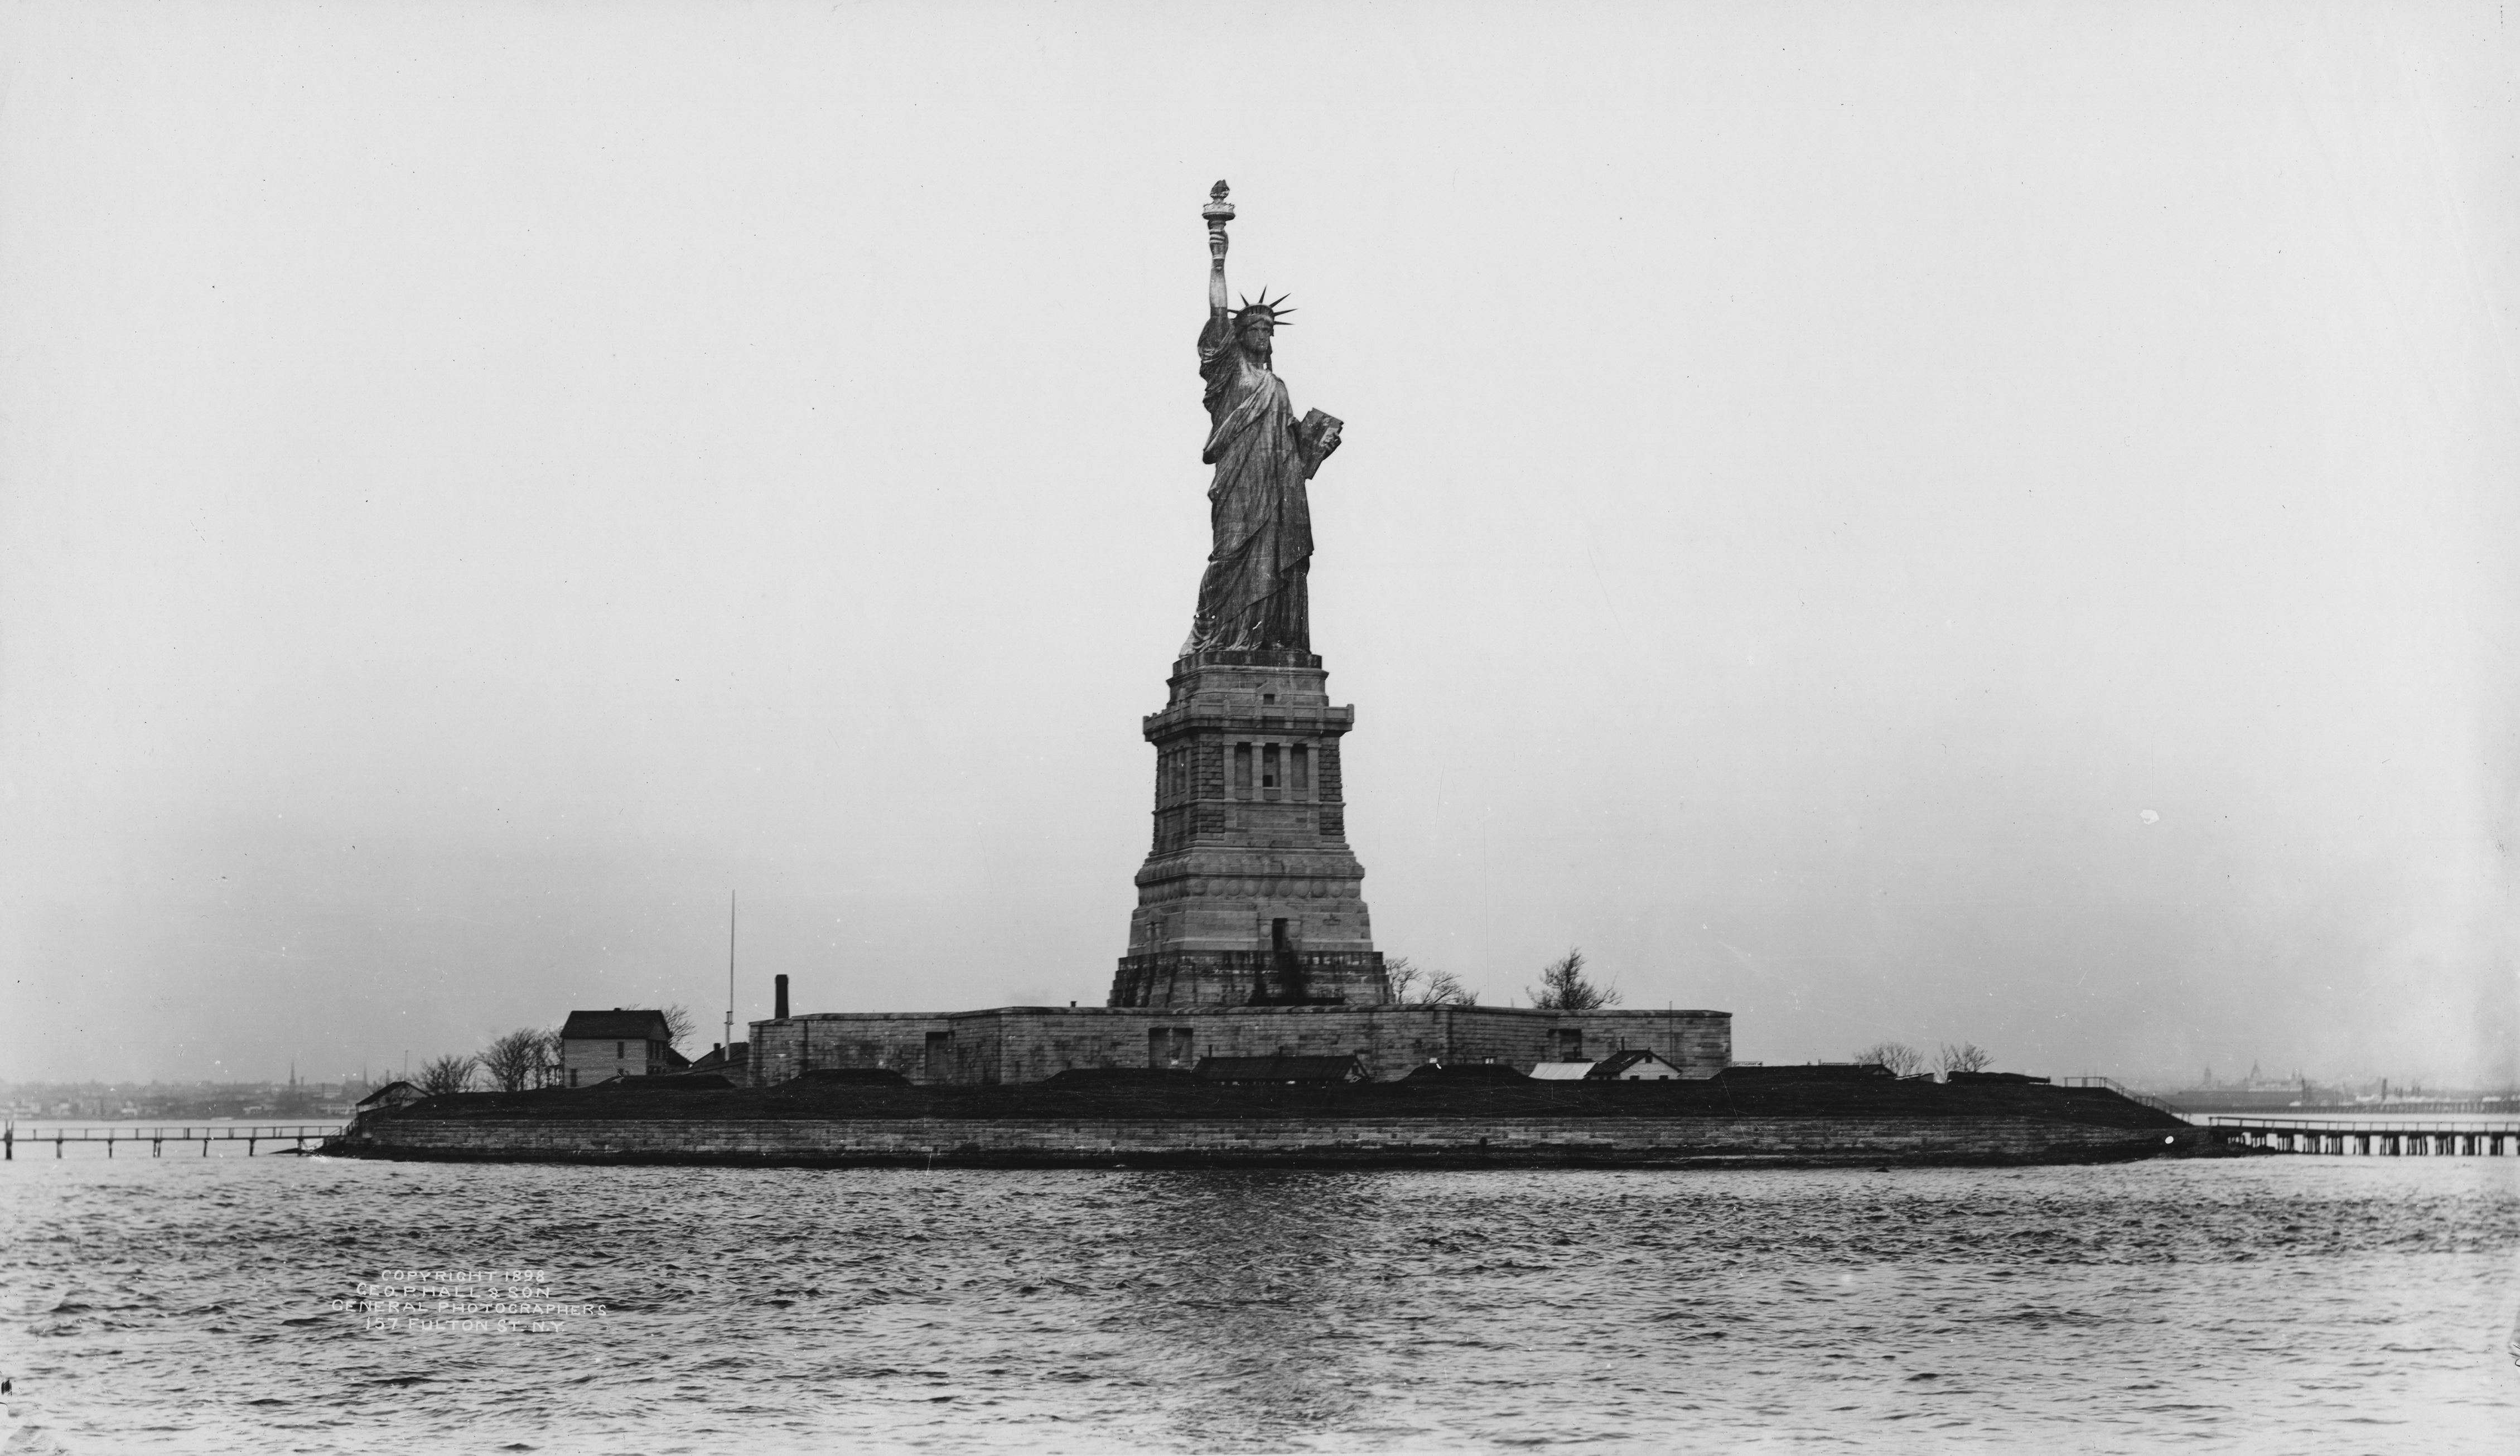 Slide 13 of 55: The Statue of Liberty and Liberty Island, New York, New York, 1898. (Photo by Geo. P. Hall & Son/The New York Historical Society/Getty Images)